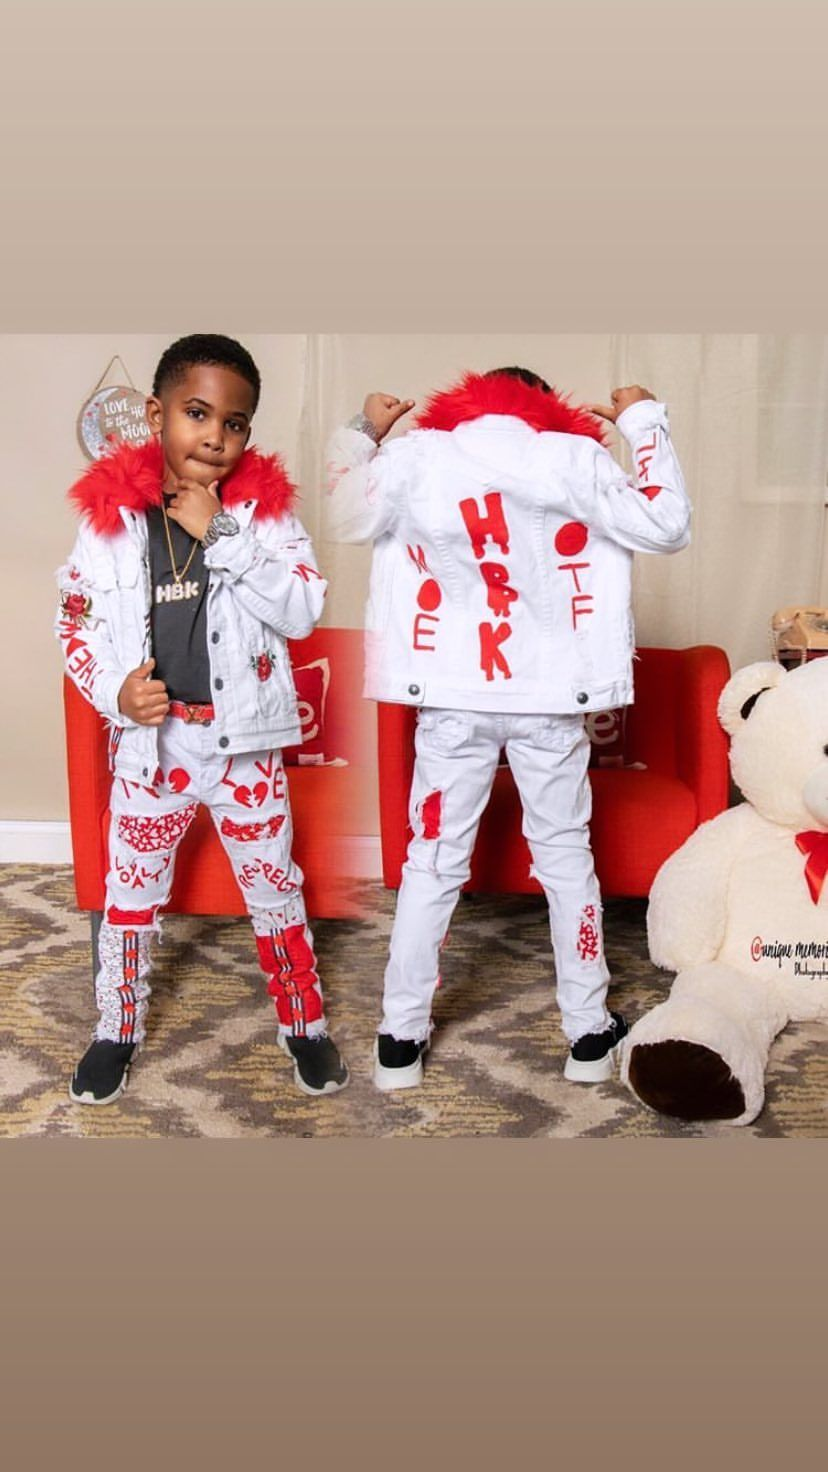 Behind The Scenes By jaycee_customs in 2020 Kids outfits